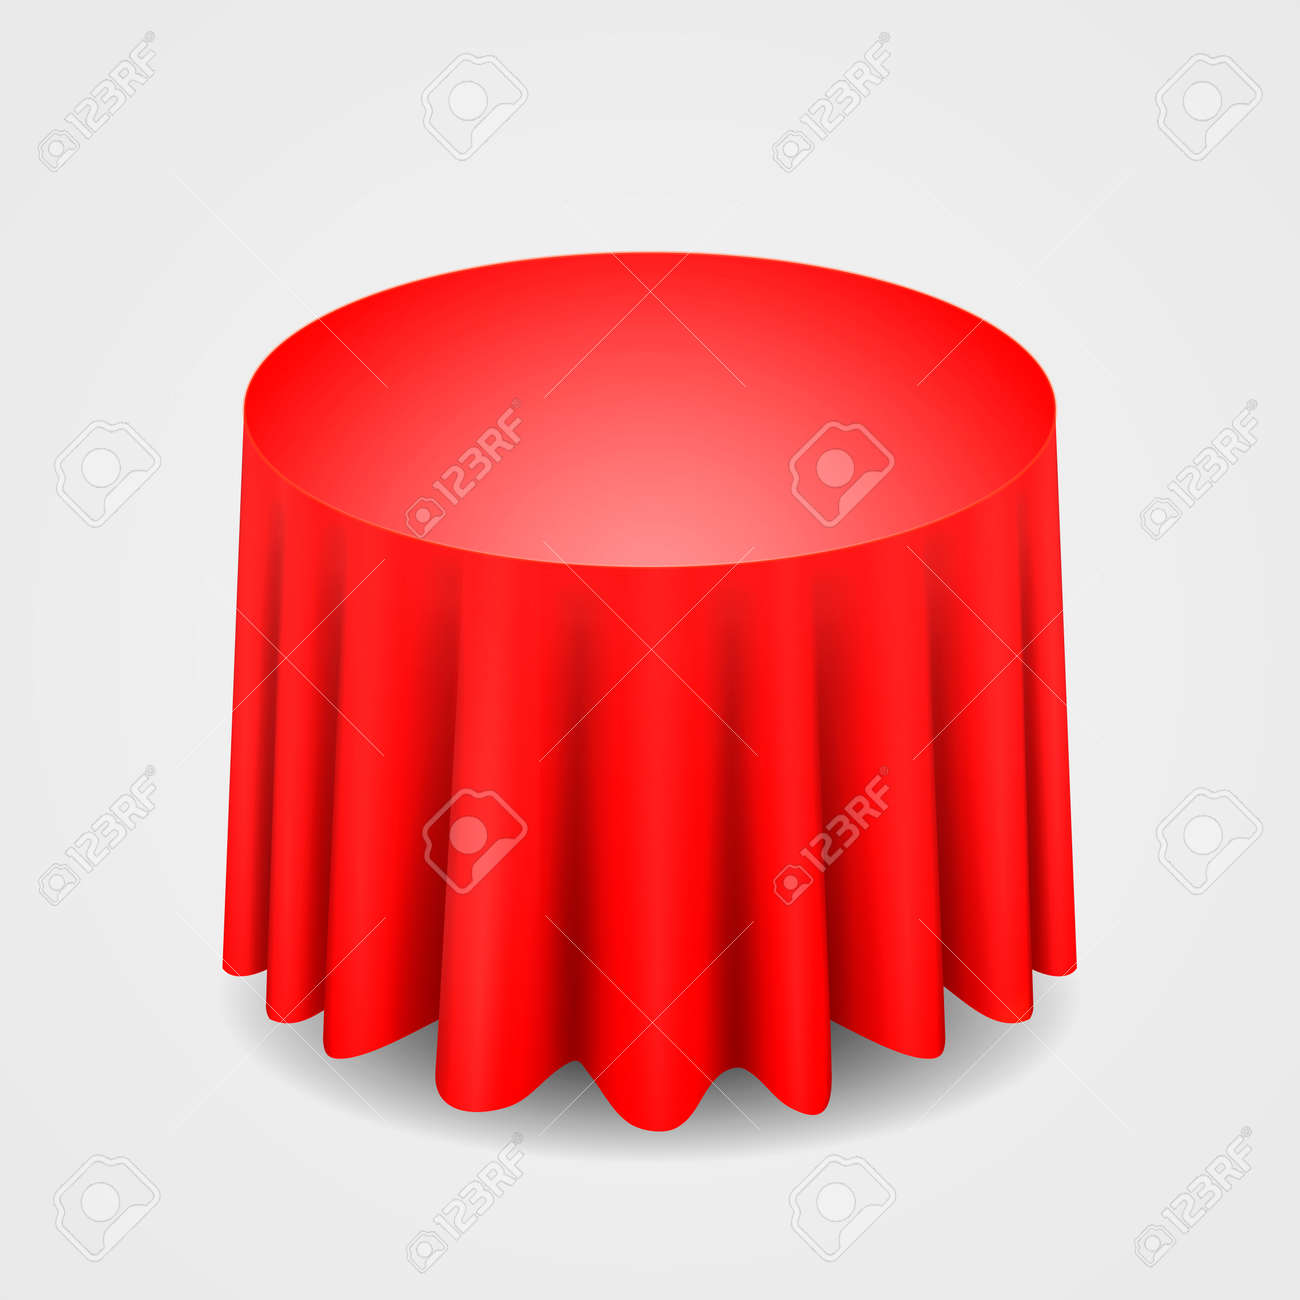 Red Round Tablecloth Table On A White Background Stock Vector   23589869